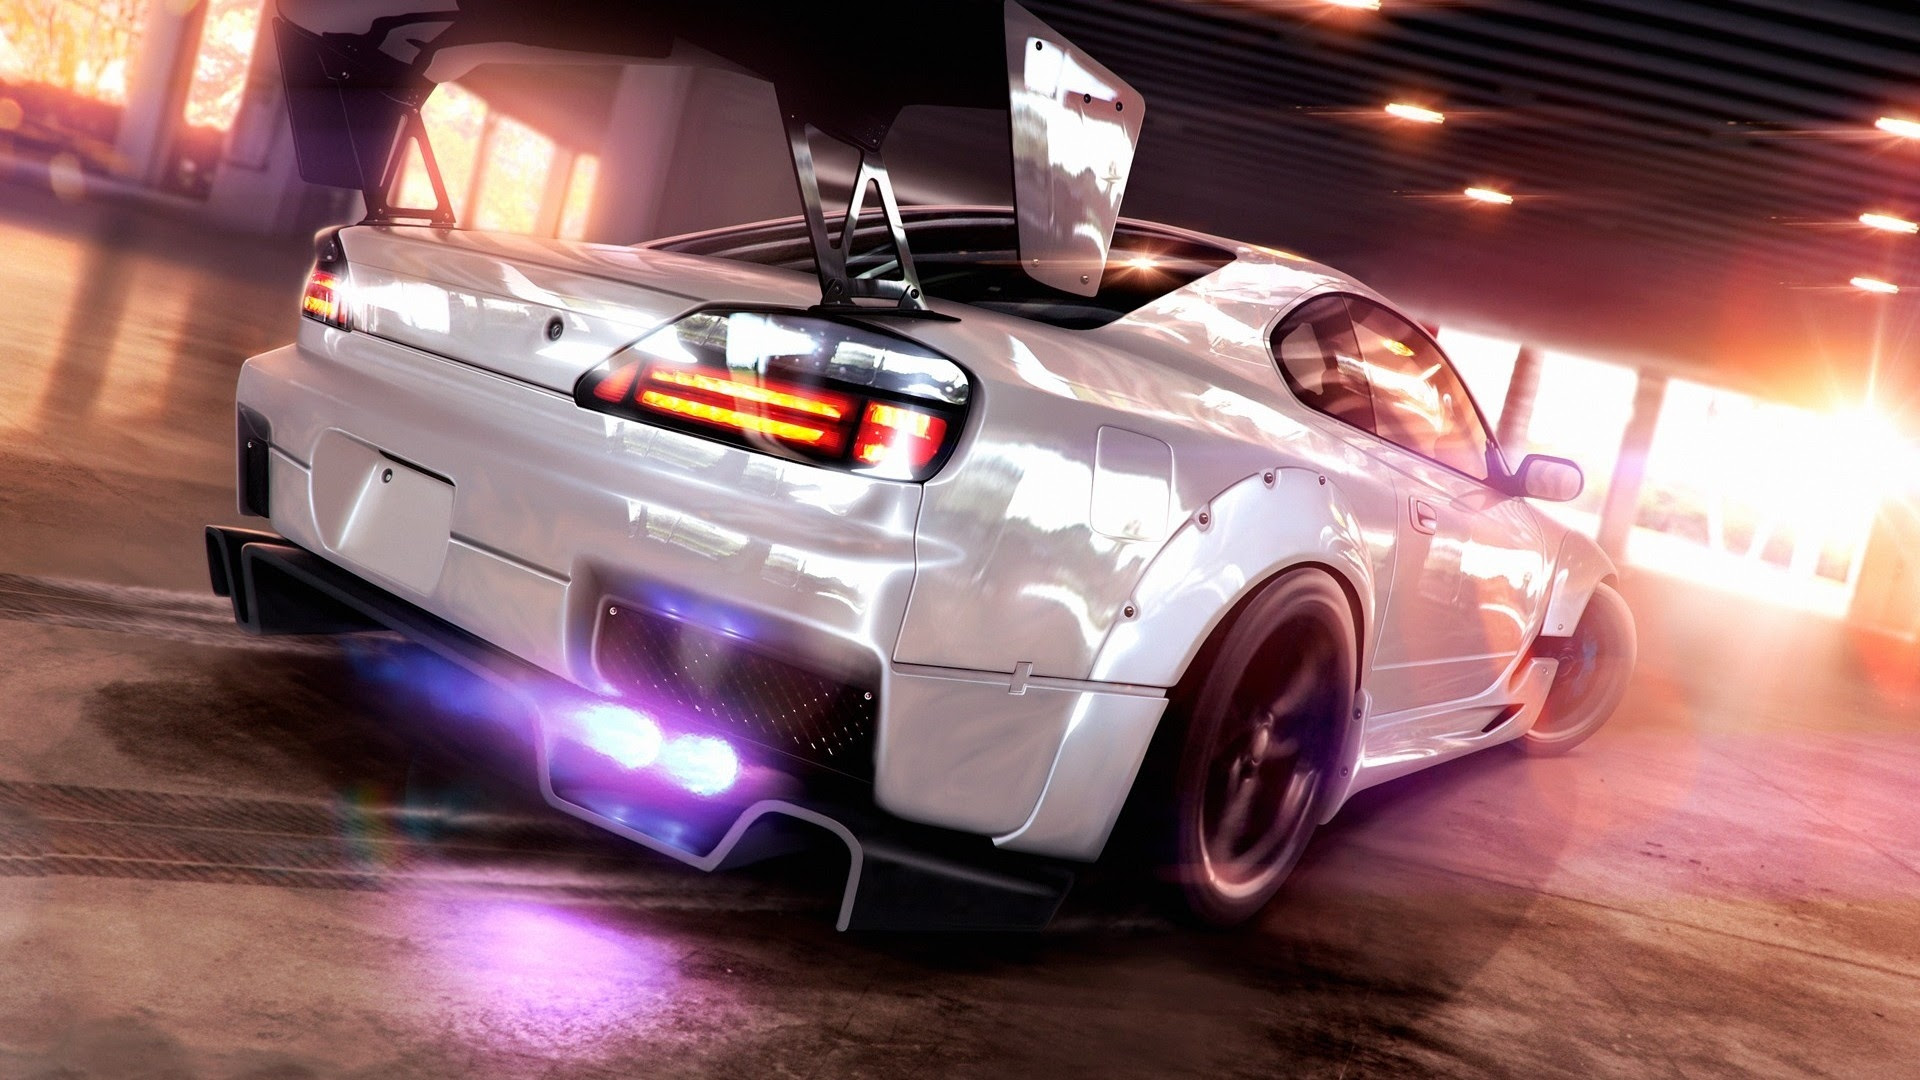 Top Beautiful Tuning Photos 68 High Quality Bsnscb Gallery